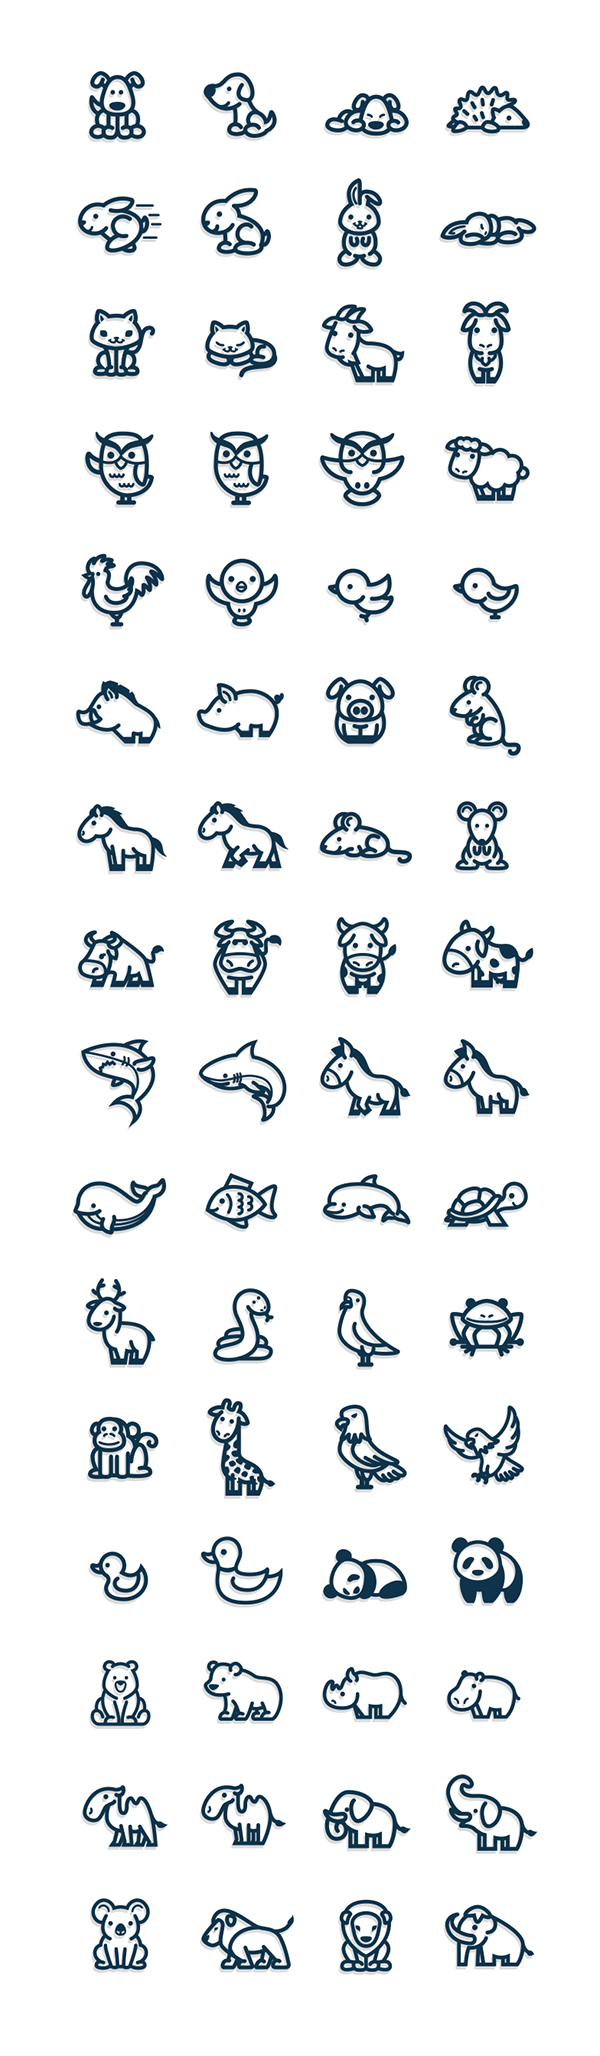 svg transparent stock Cute and simple vectorial animal icons